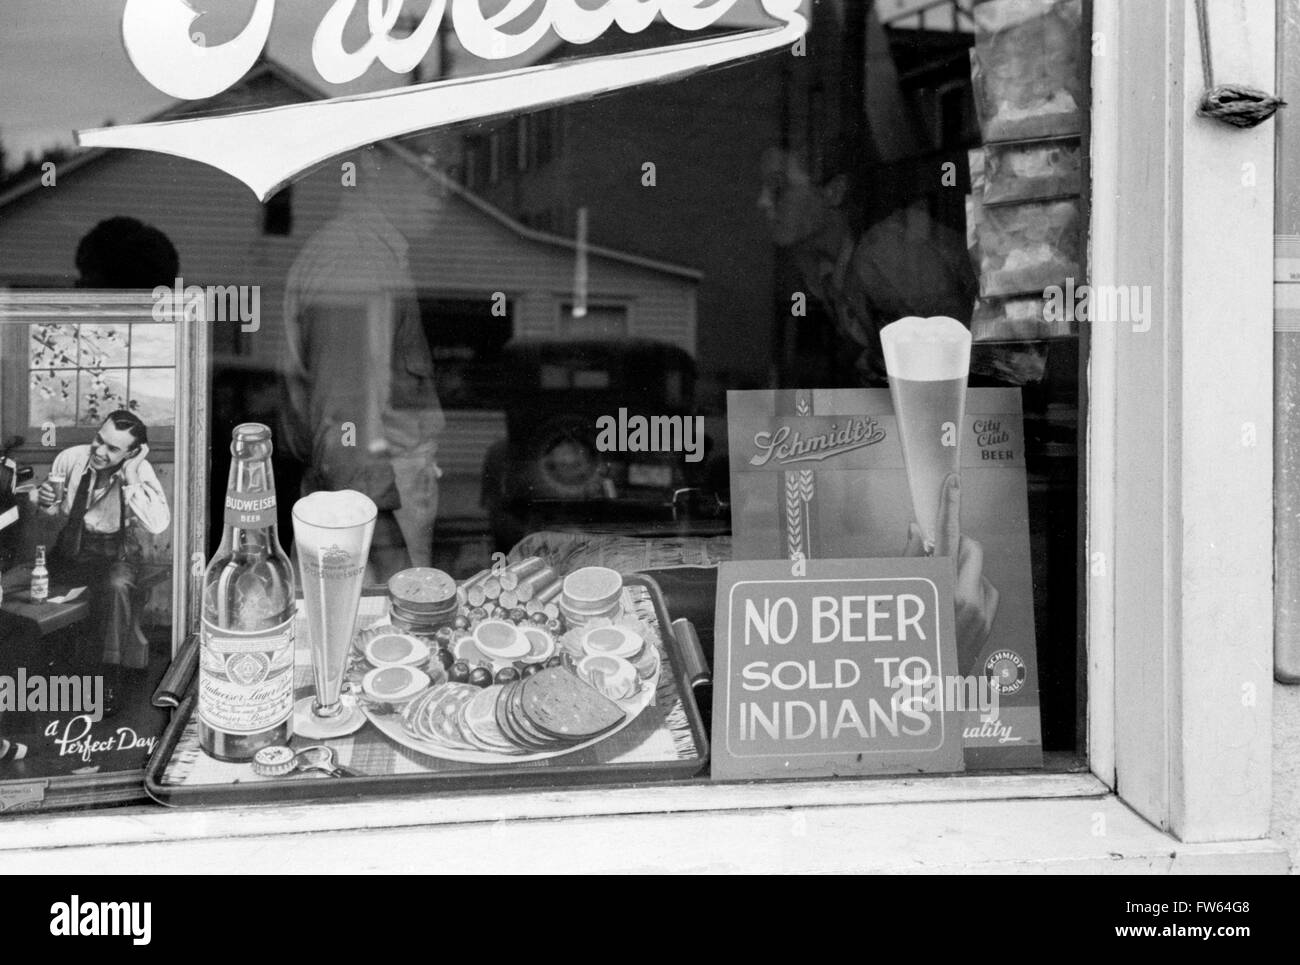 Racial Discrimination. 'No Beer Sold to Indians' sign in the window of a bar in Sisseton, South Dakota, - Stock Image